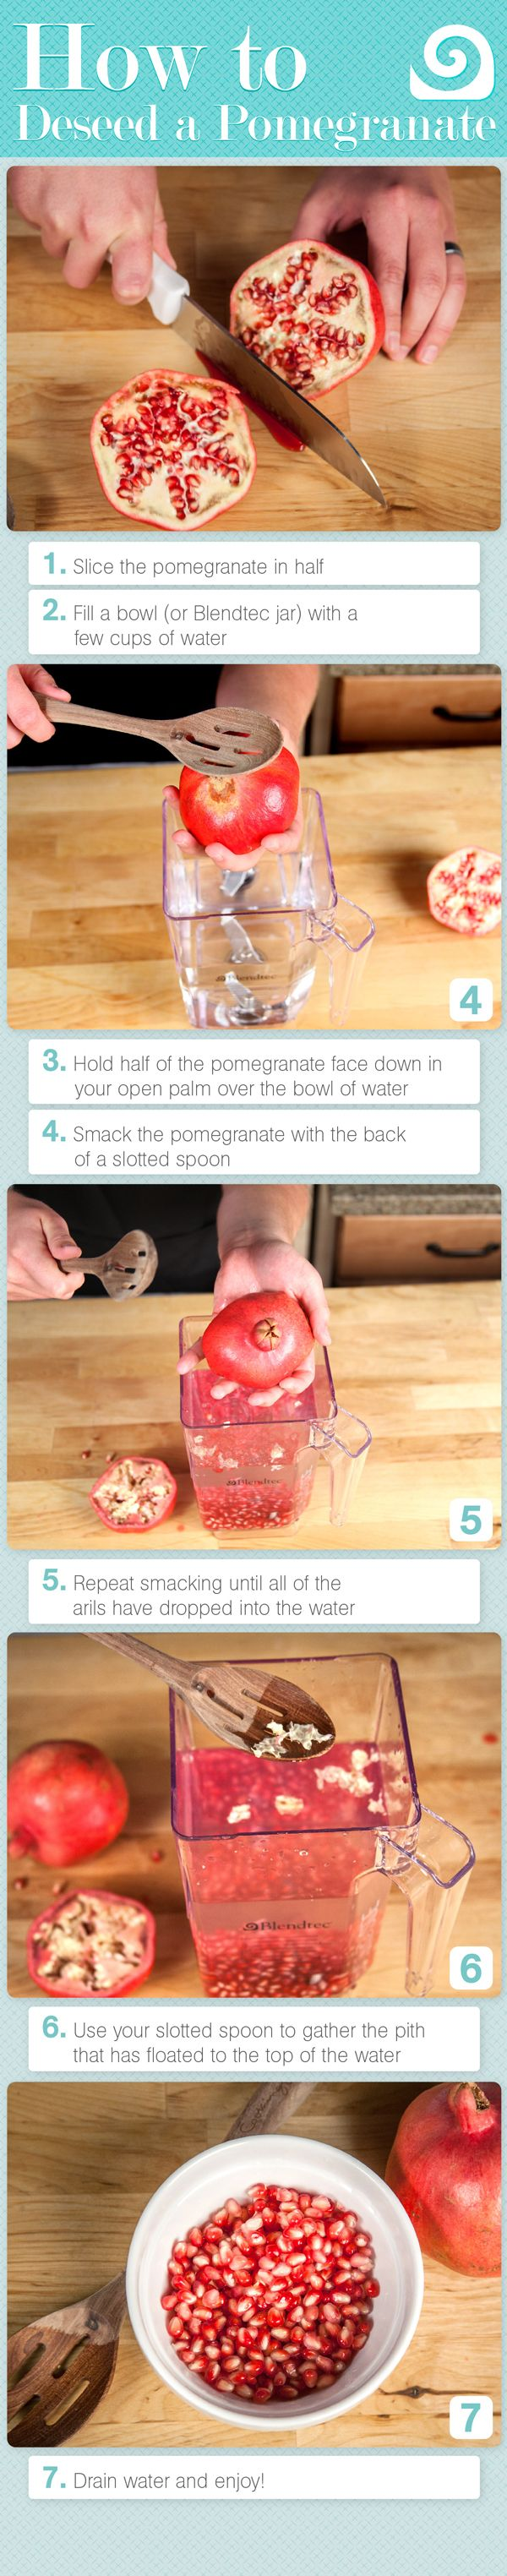 How to deseed a pomegranate!